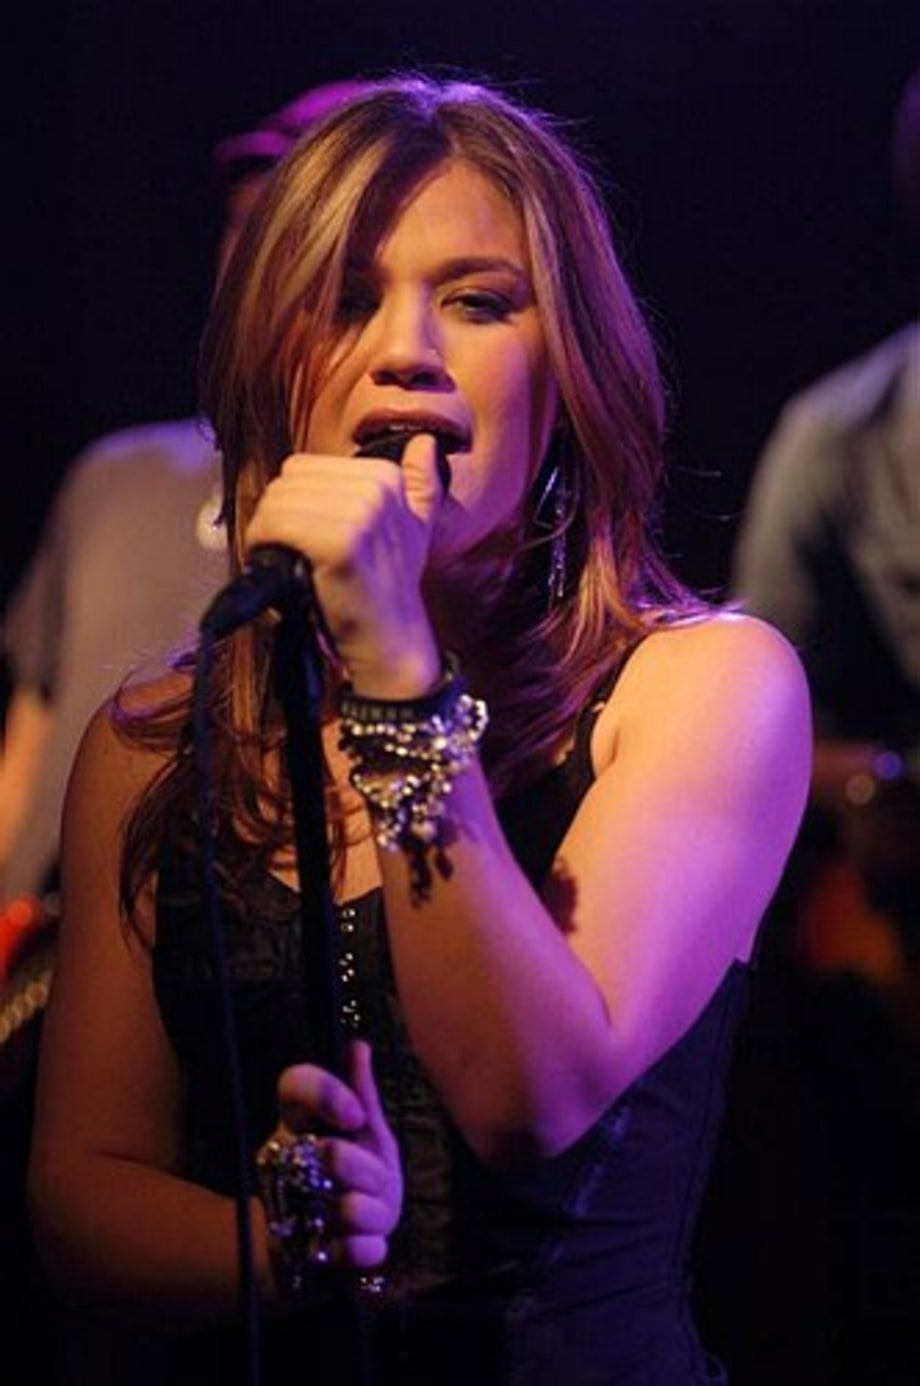 Kelly Clarkson 18 - performance - Quad Studios, NYC 12/8/04 large